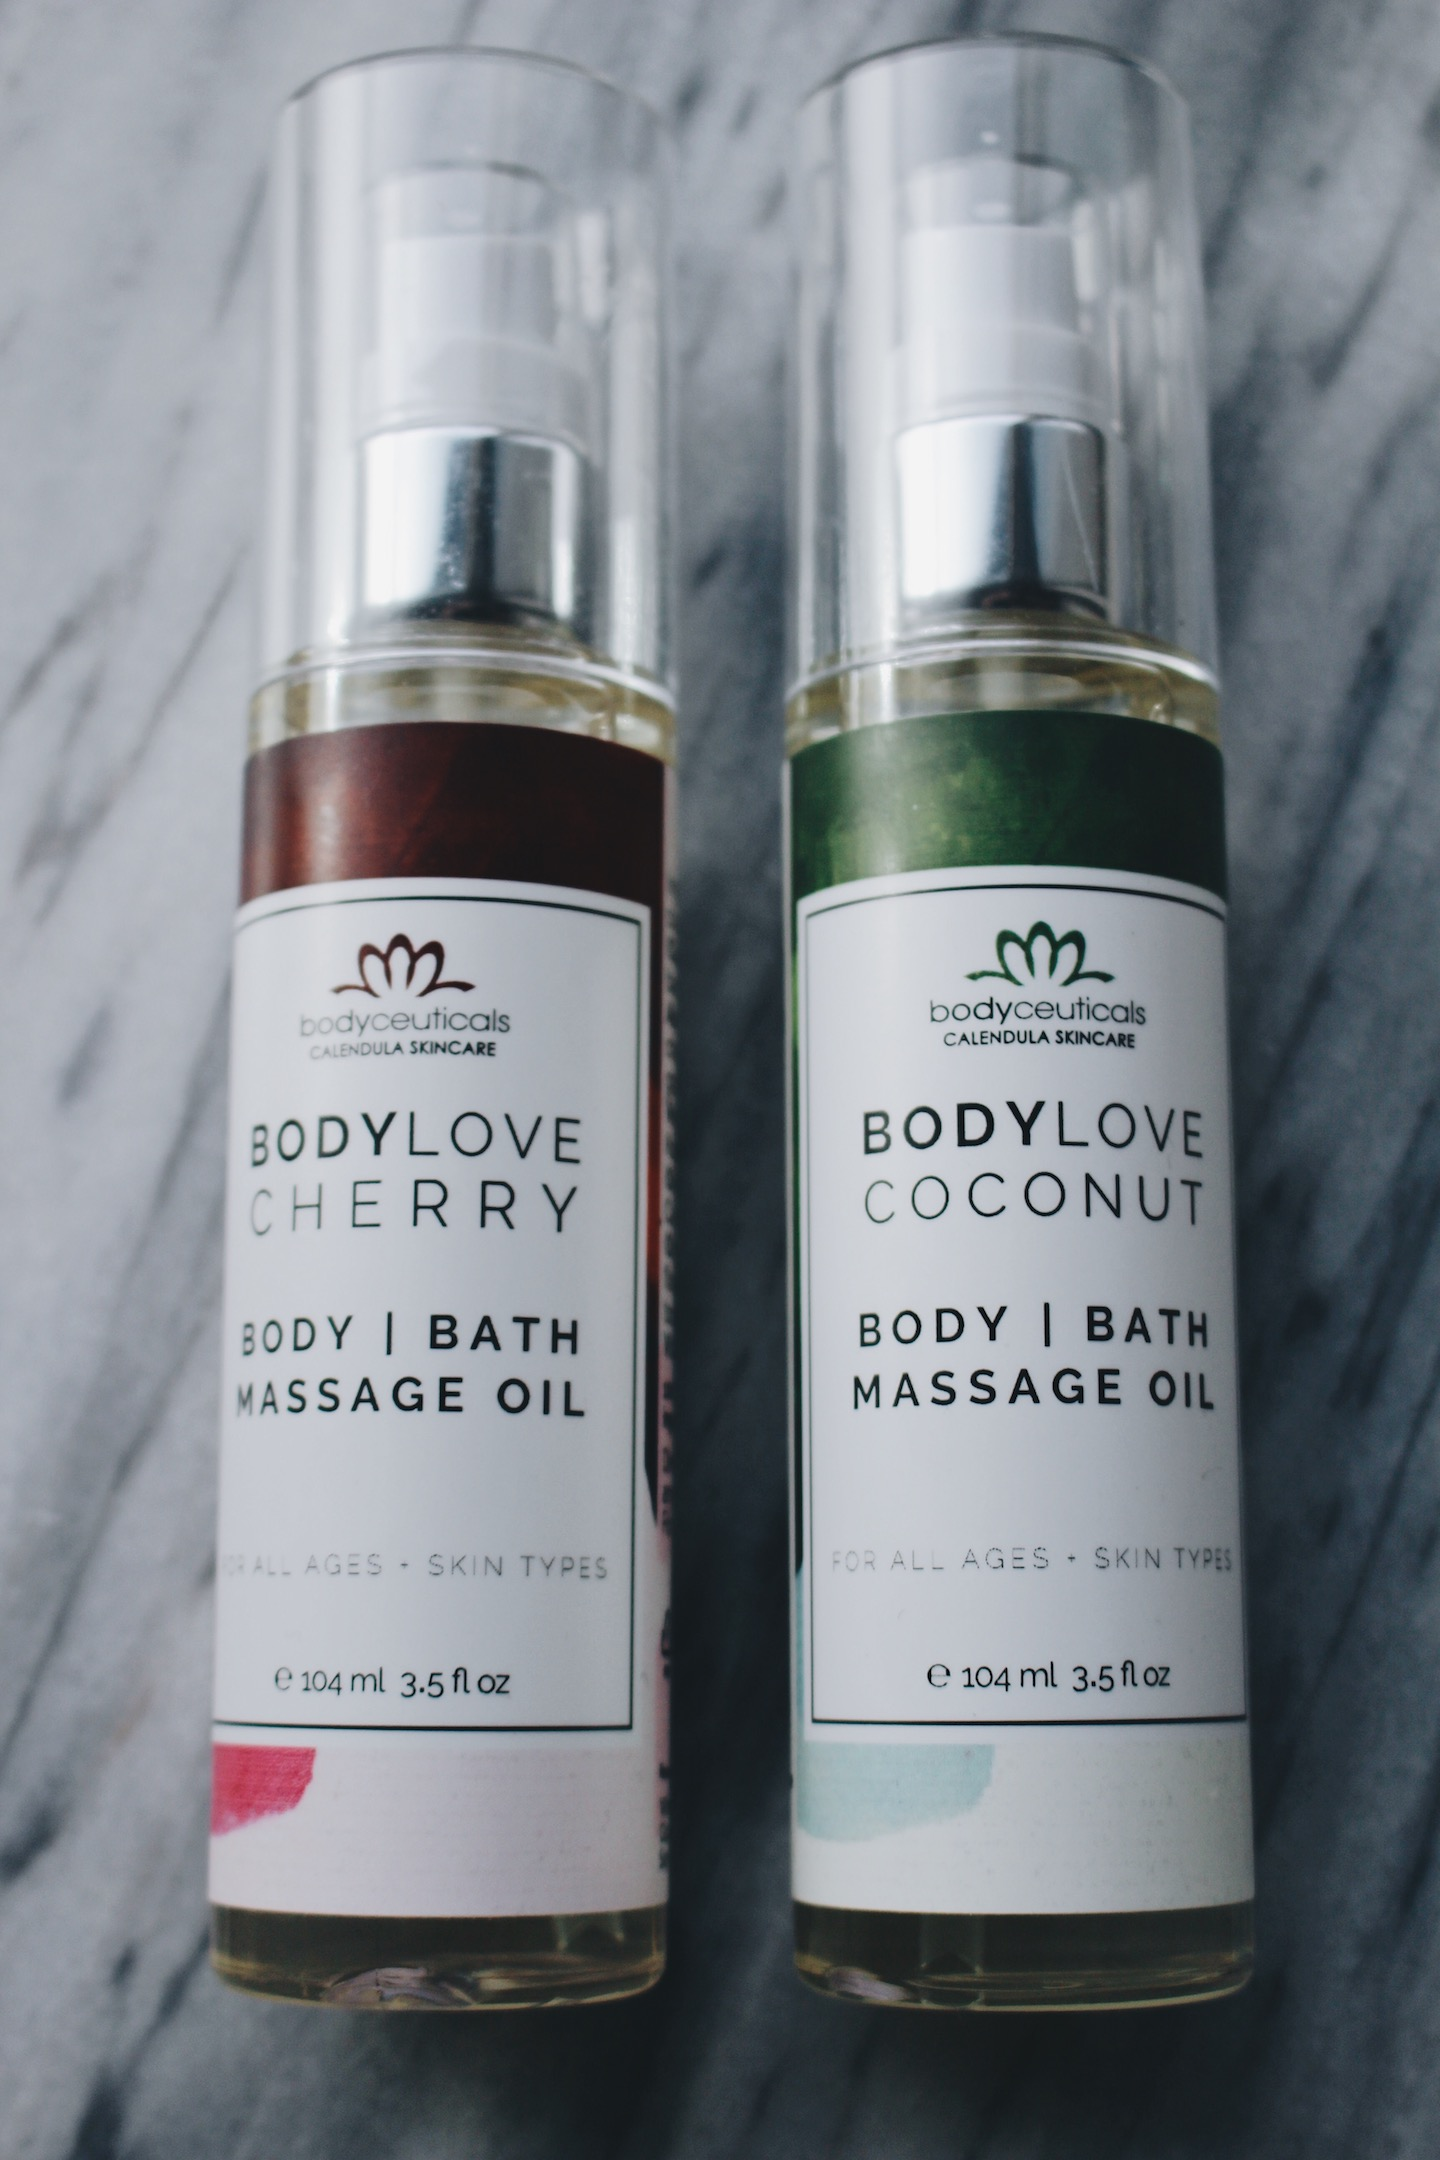 BodyCeuticals Oil - This oil is one of our favorites. It's filled with all the good stuff and will leave you feeling soft and moisturized. You can use it on your face, all over your body, as a lube, in the bath, or for a relaxing massage. $21 on Bodyceuticals website or Amazon.